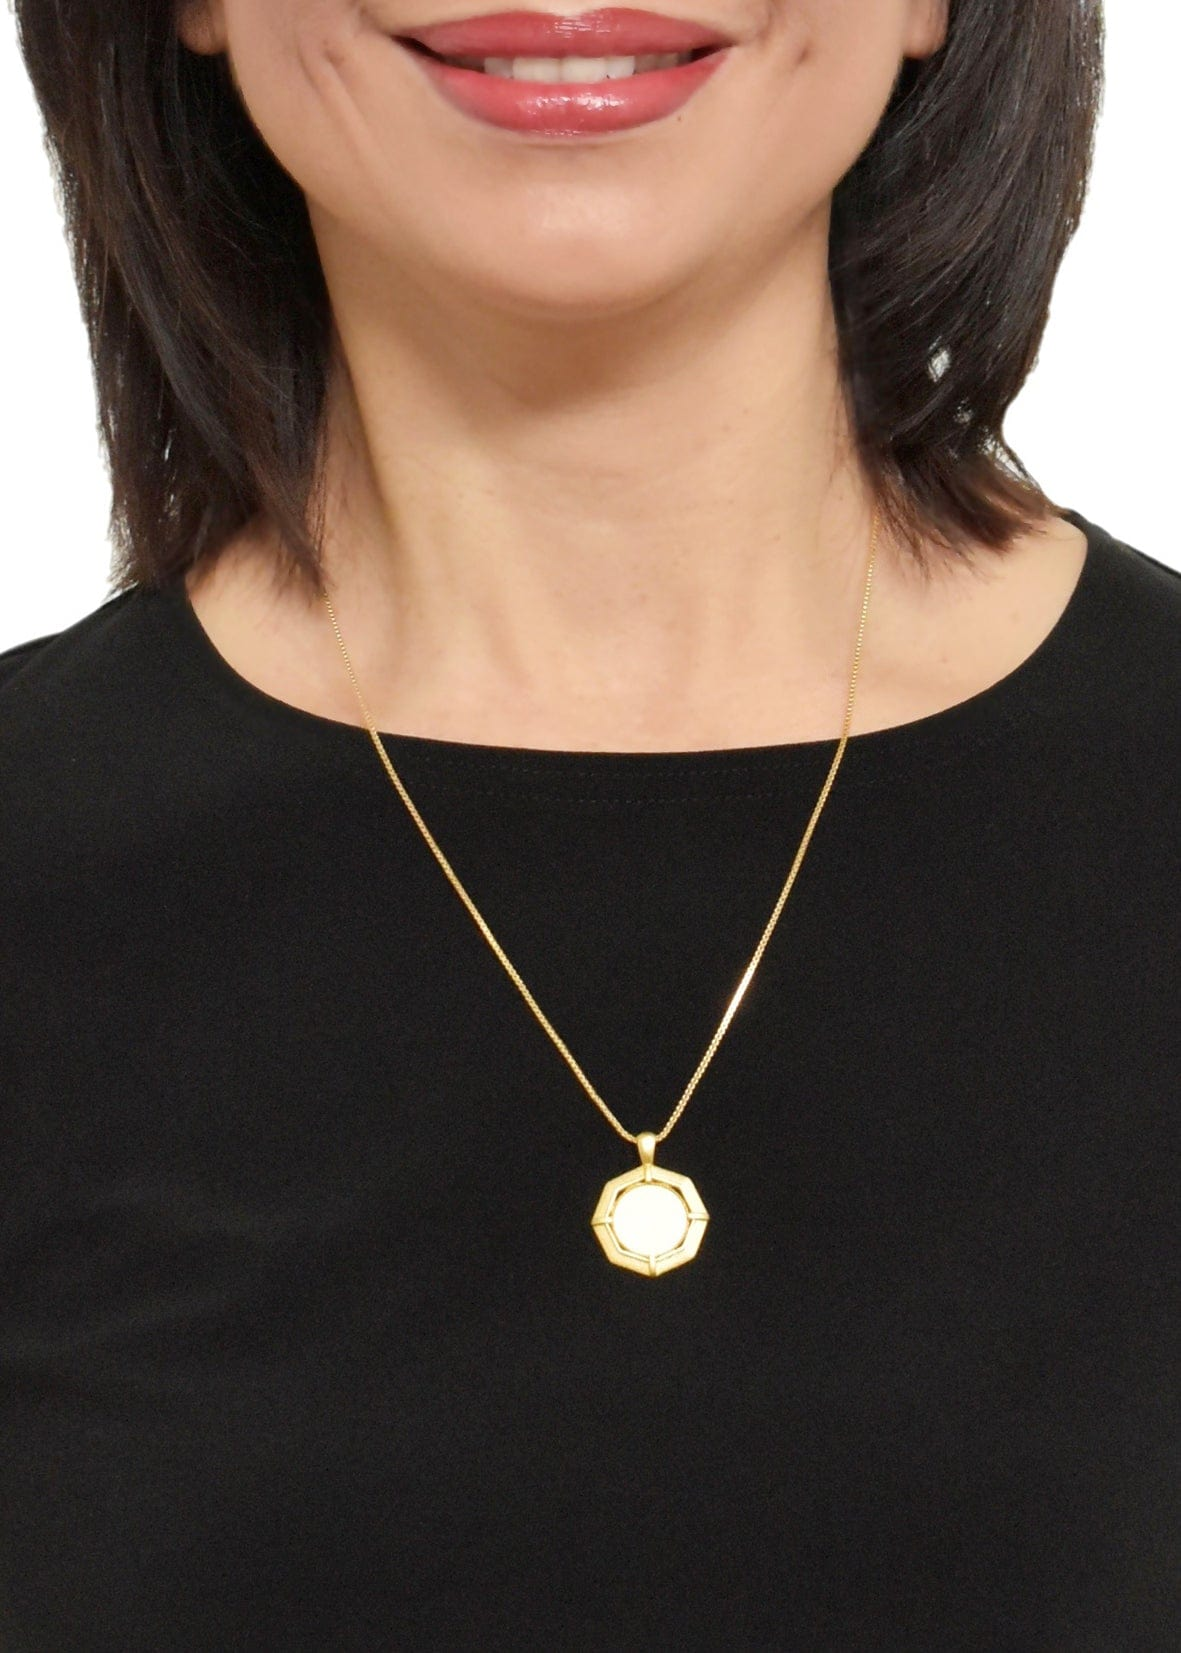 LEATHER/SUEDE PEARL NECKLACE - WANTED